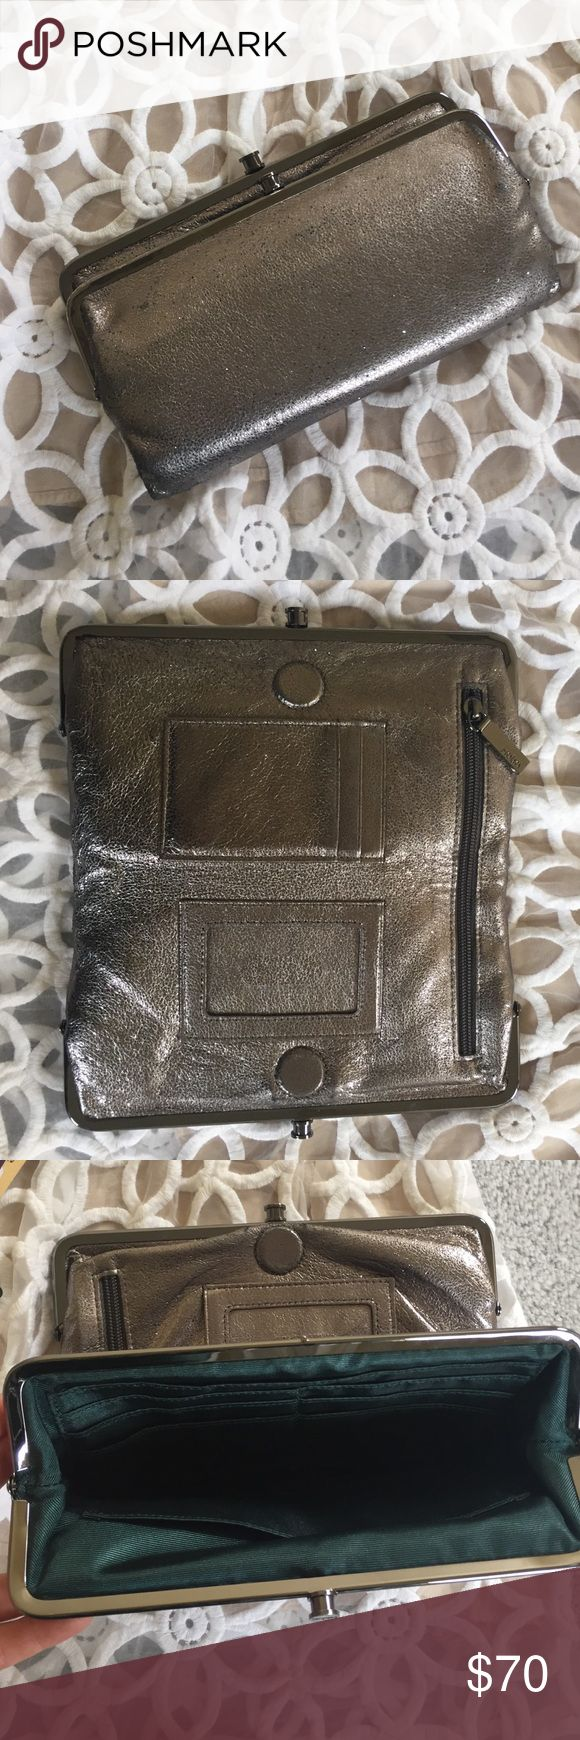 Hobo Wallet | Lauren Charcoal sparkly Gray hobo wallet. Used for only 6mo. No damages, just signs of minimal wear since it's real leather. Looks new! Double clutch. Zipper in middle. Magnet keeps wallet closed. HOBO Bags Wallets